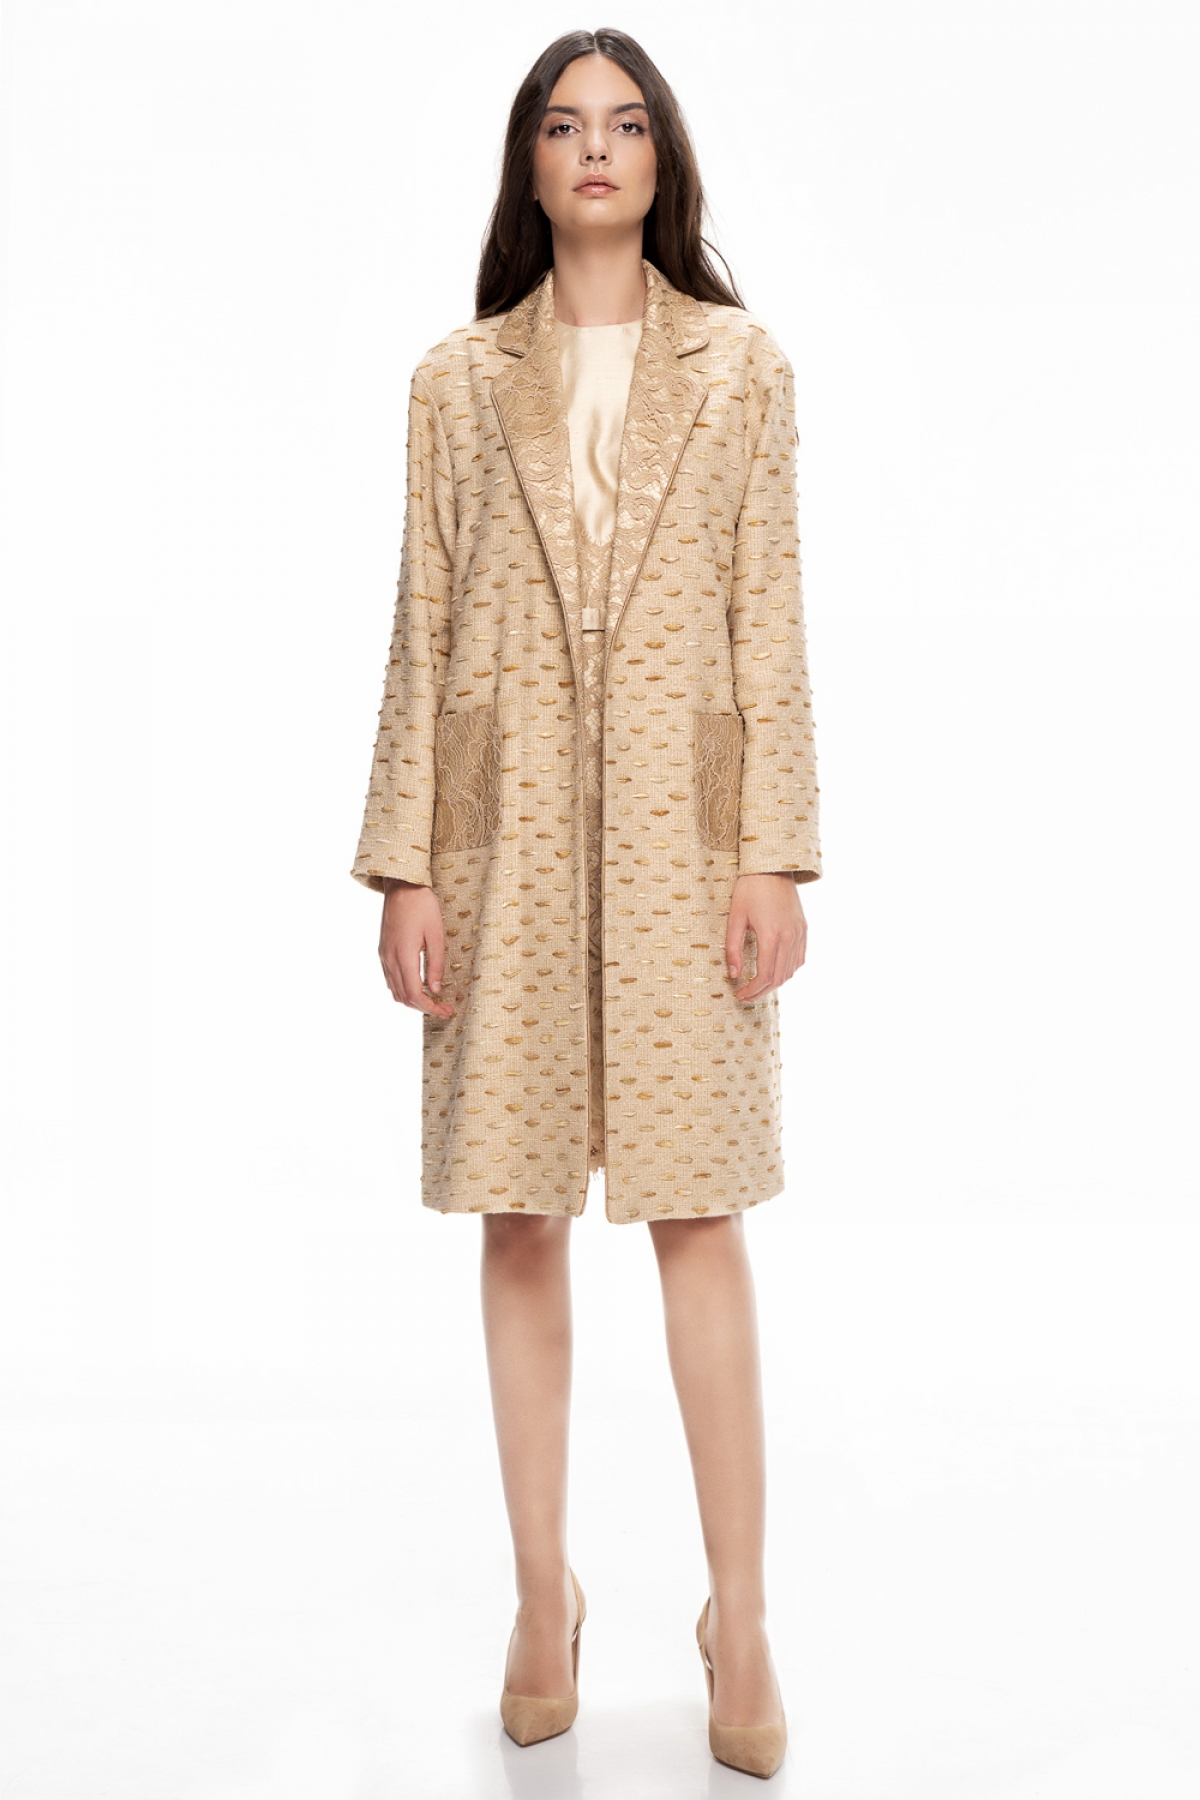 Lace robe coat